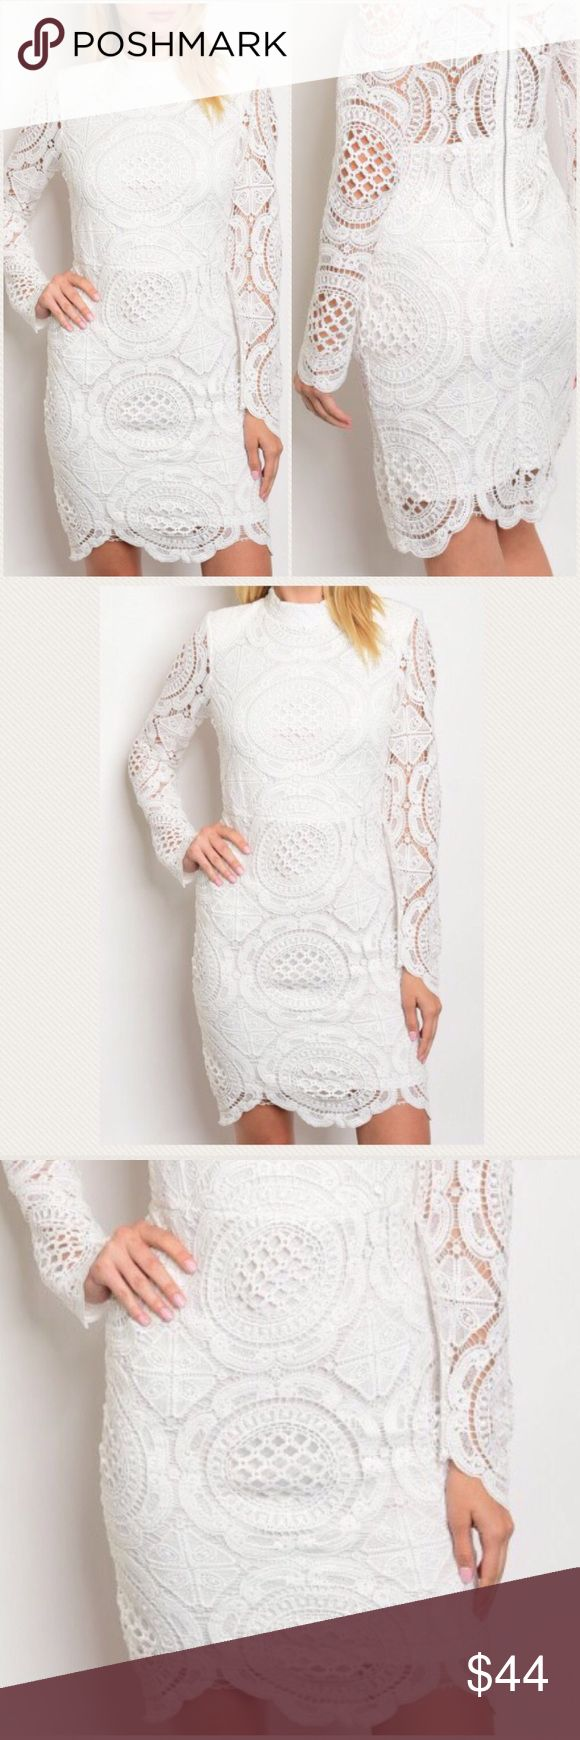 """Off White Lace Dress Ultra feminine off white crocheted dress, lined, high neck and zippered back, very slimming fit. Beautiful dress for a fun night out, a special occasion or beach wedding. Fits true to size. NWT.   100% Polyester.   Small: L: 37"""" B: 32-36""""  👗Only 1 left! 👗 Medium: L: 38"""" B: 34""""-38""""  Large: L: 39"""" B: 36""""-40"""" Dresses Mini"""